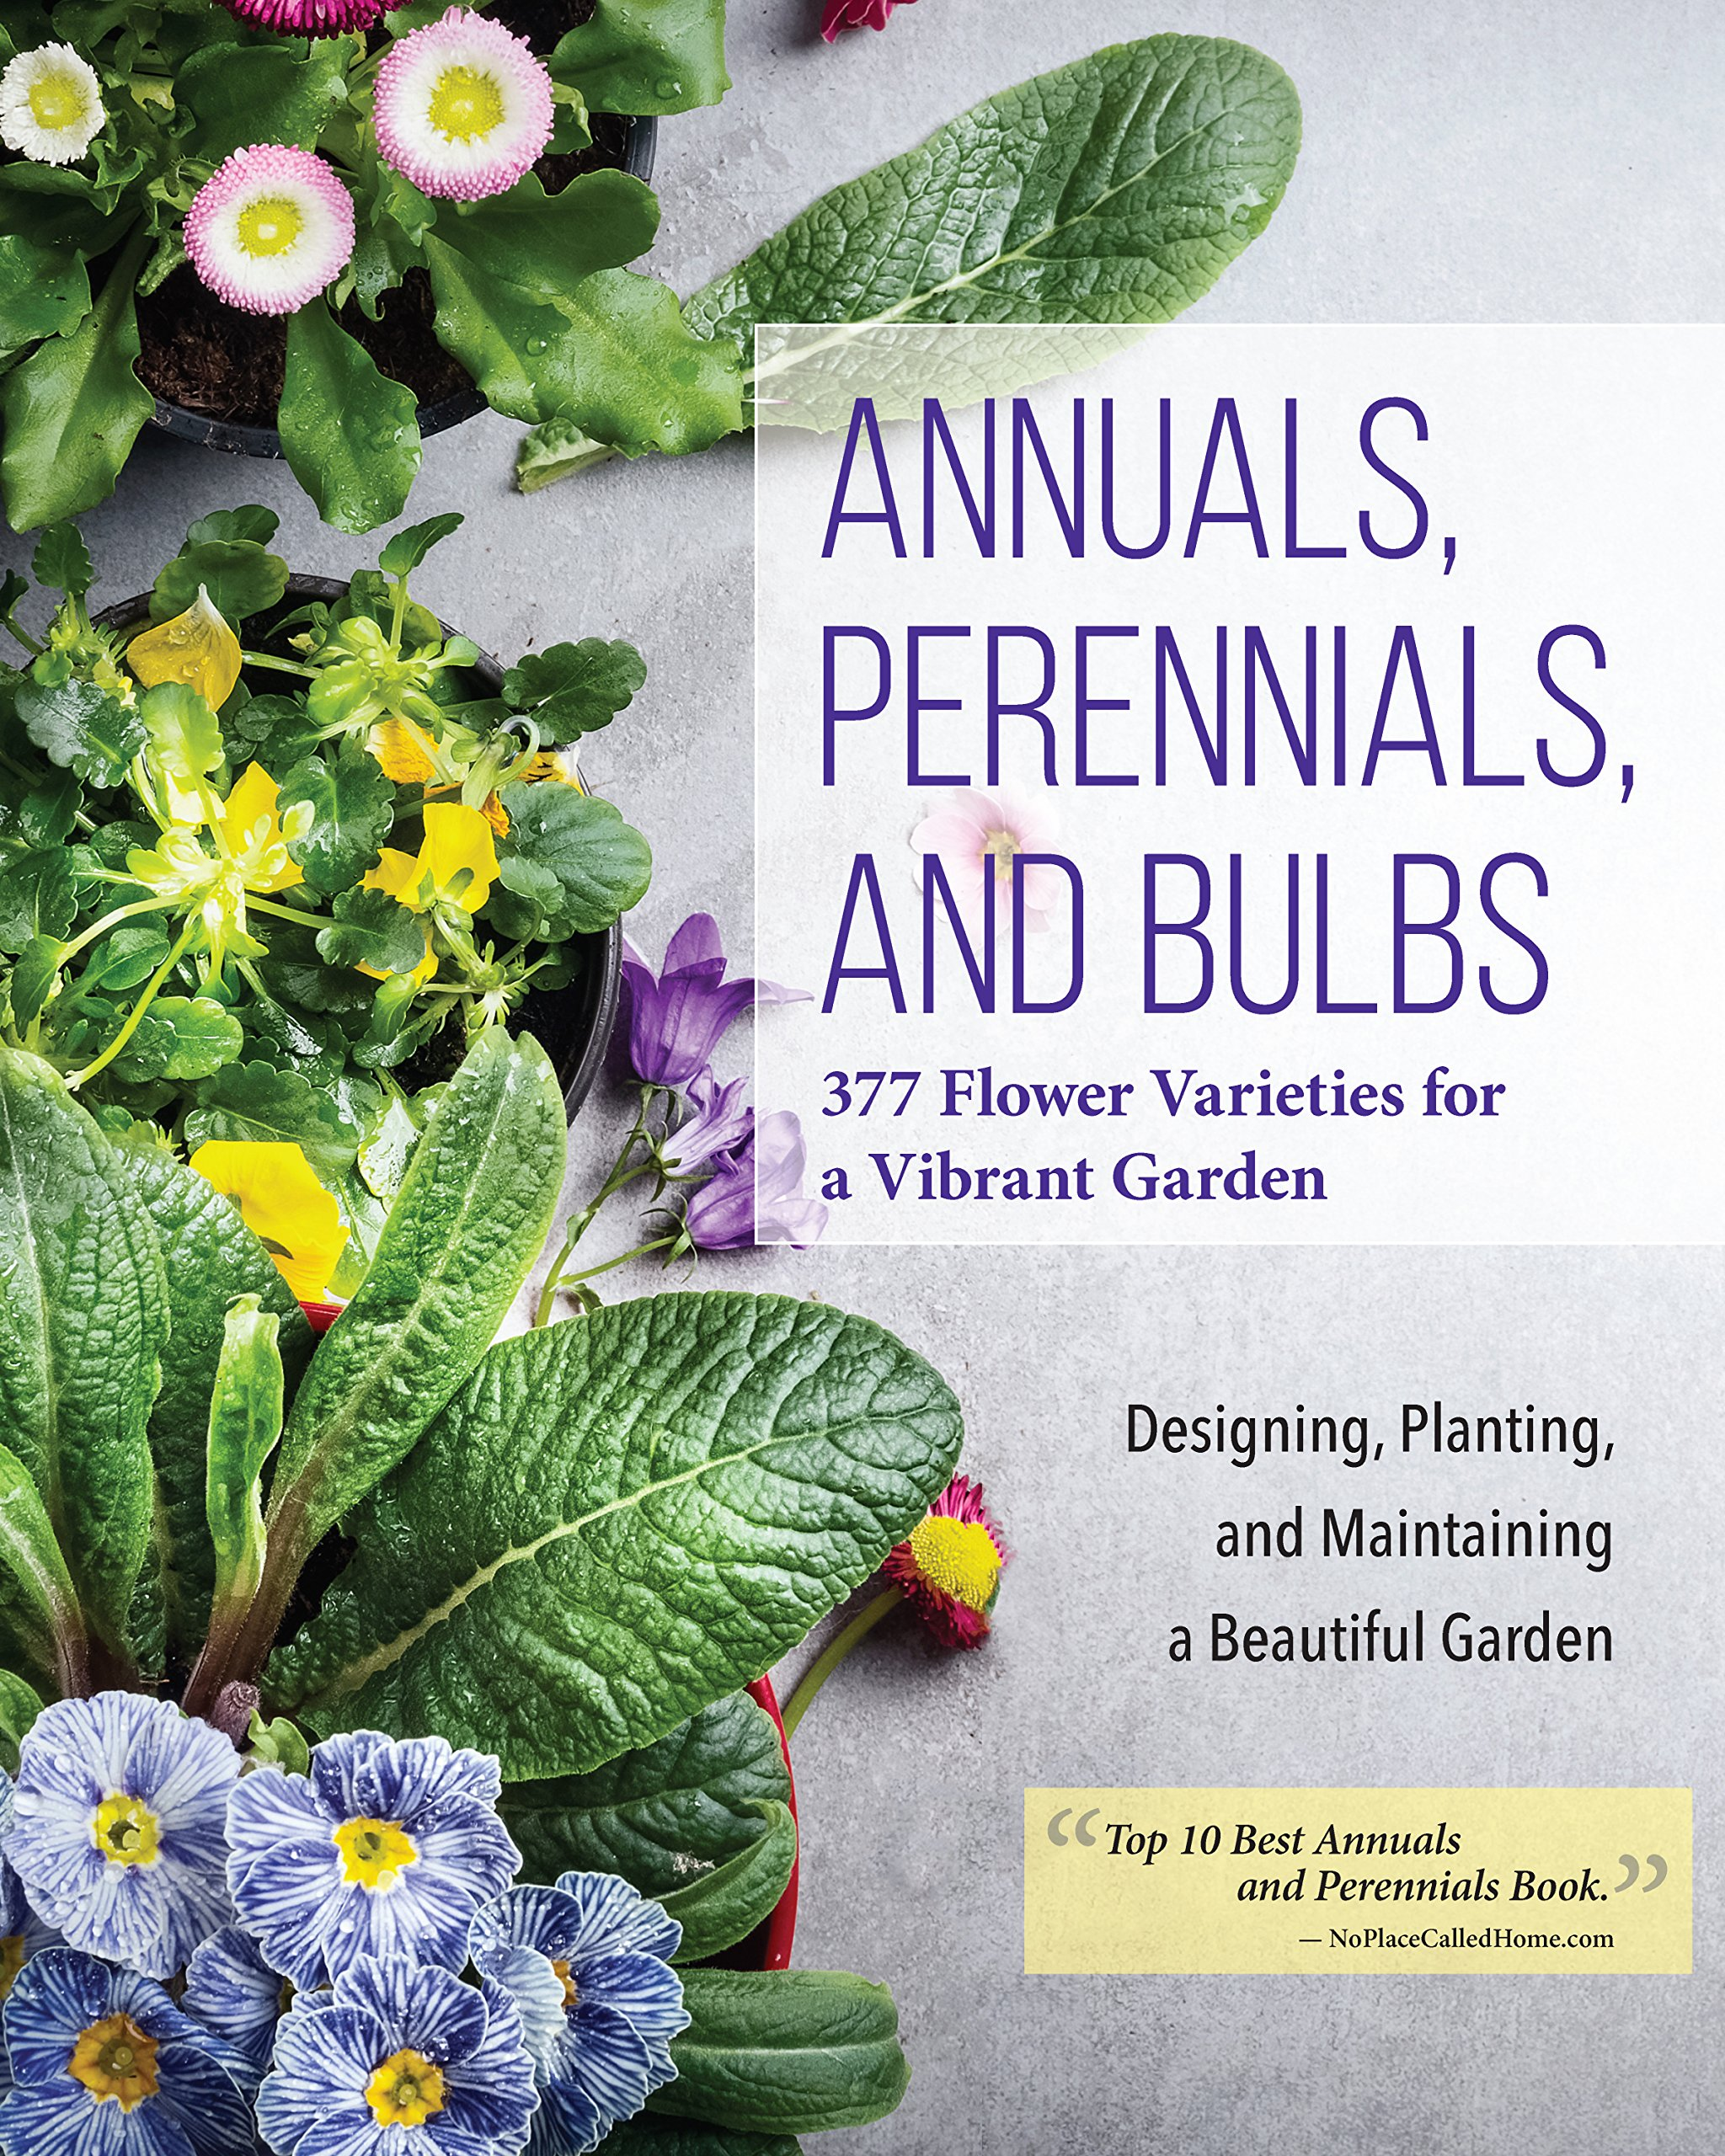 Annuals, Perennials, and Bulbs: 377 Flower Varieties for a Vibrant Garden (Creative Homeowner) 600 Photos and Over 40 Step-by-Step Sequences to Help Design, Improve, & Maintain Your Landscape by Design Originals